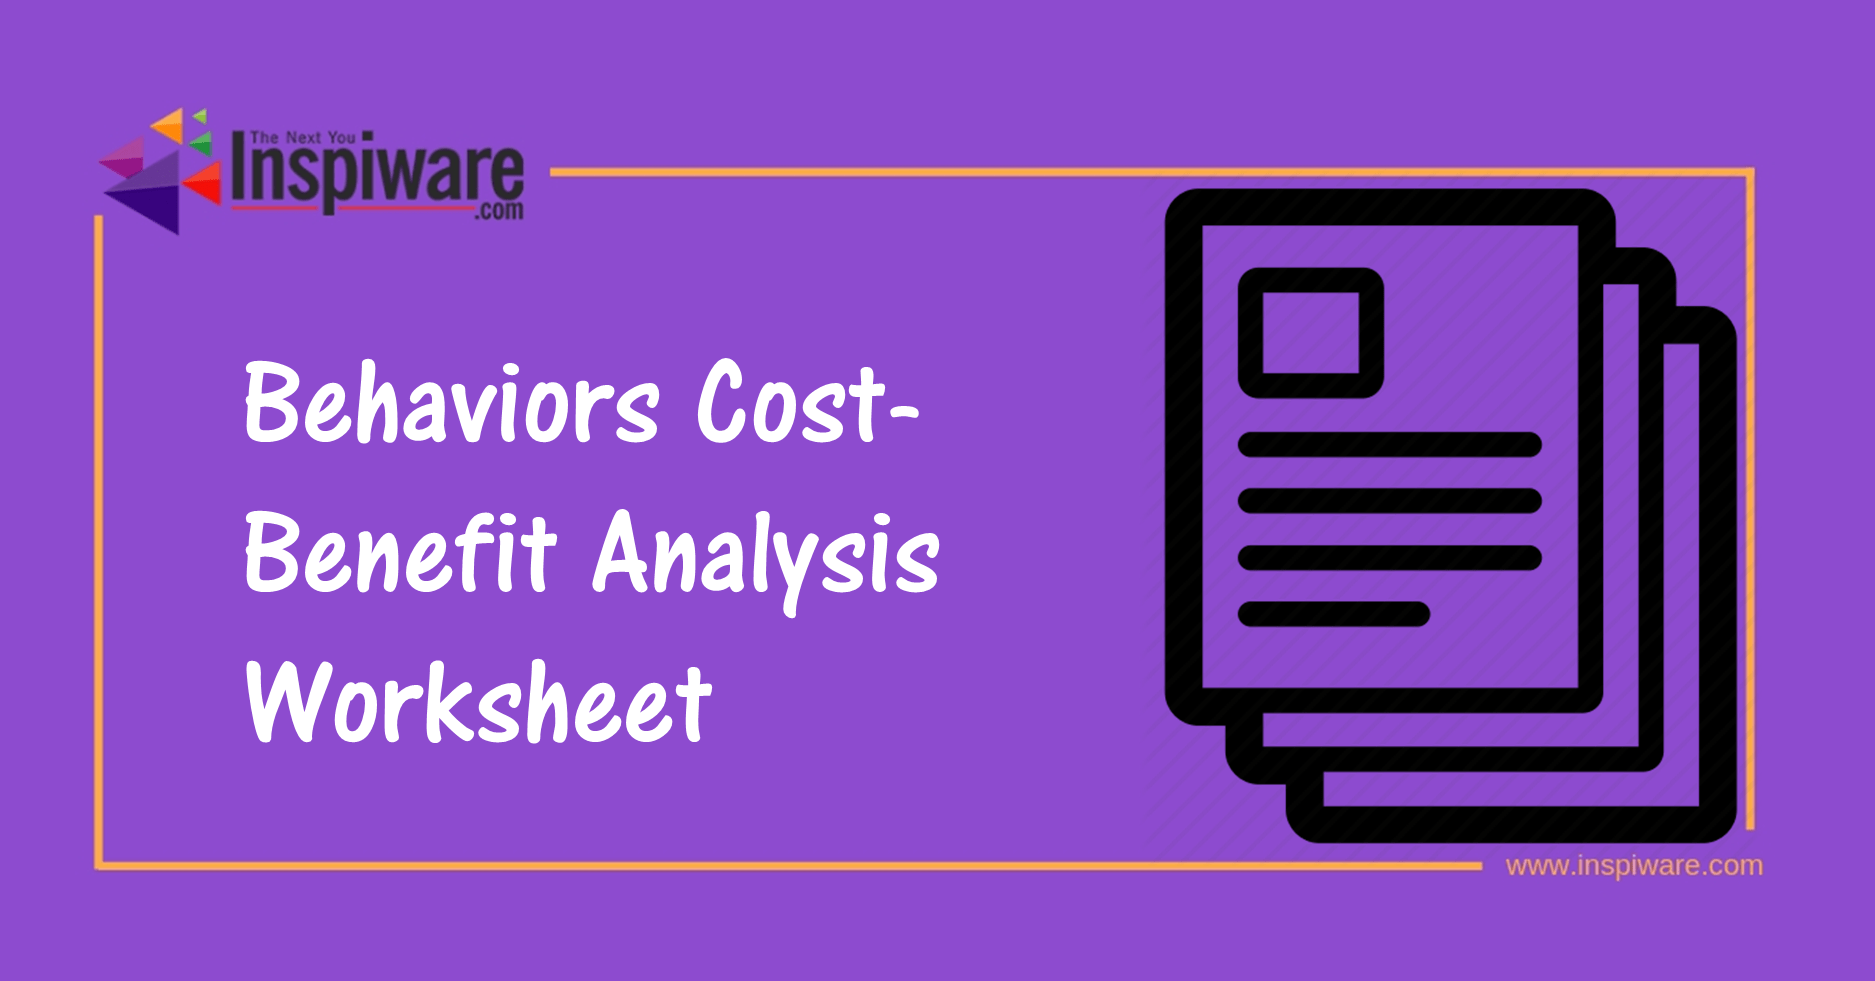 Behaviors Cost Benefitysis Worksheet